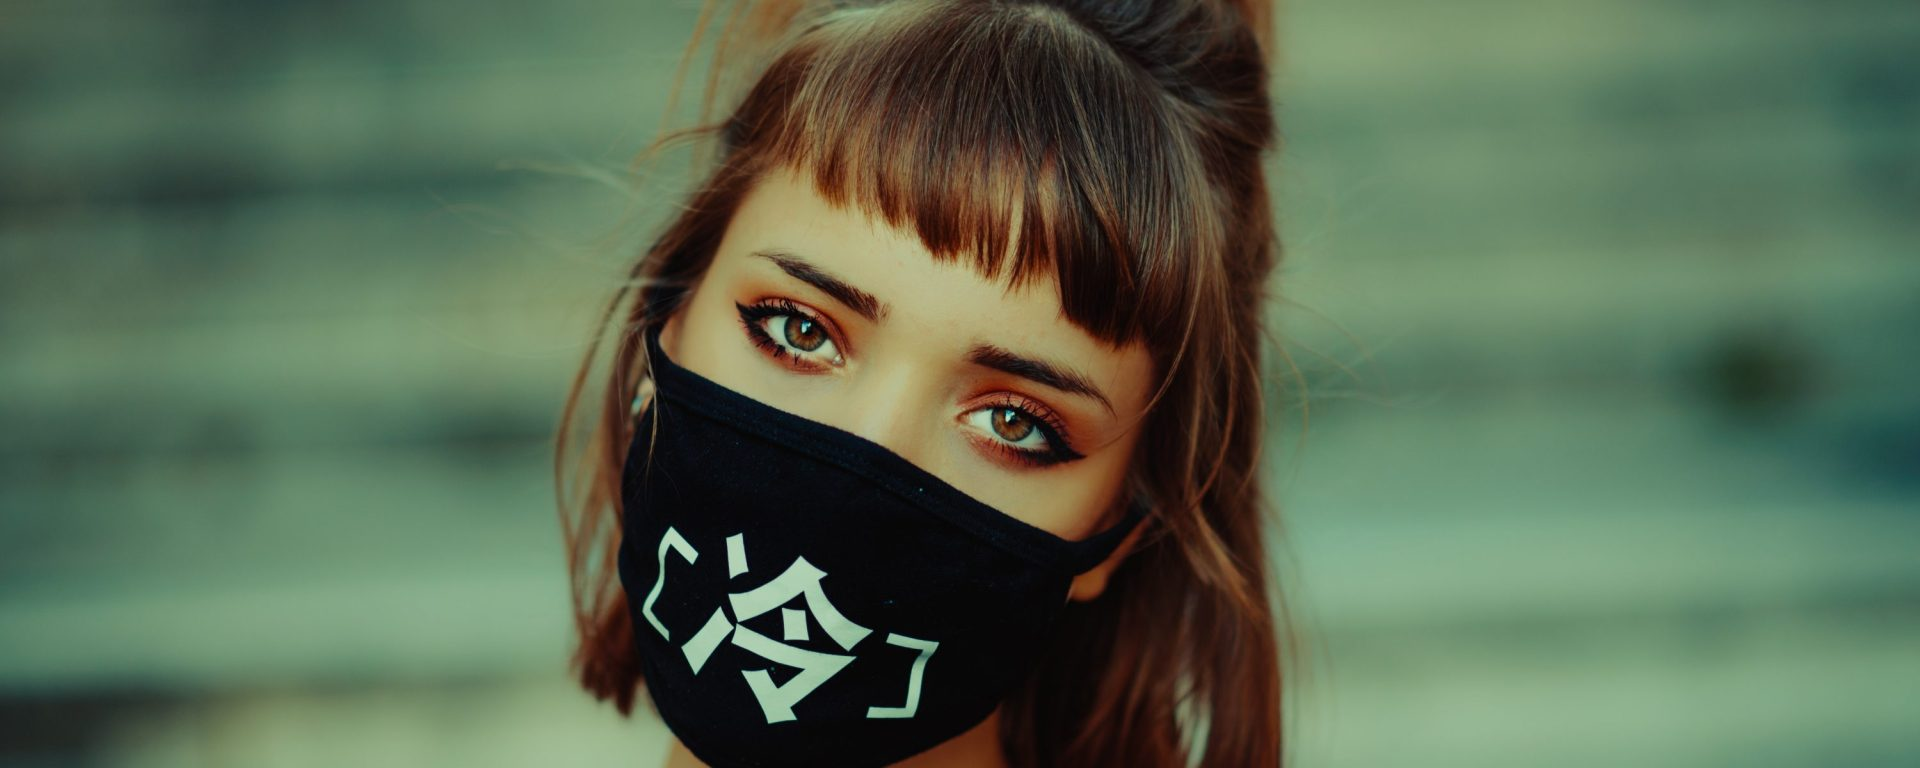 Masks. Image: Flavio Gasperini on Unsplash